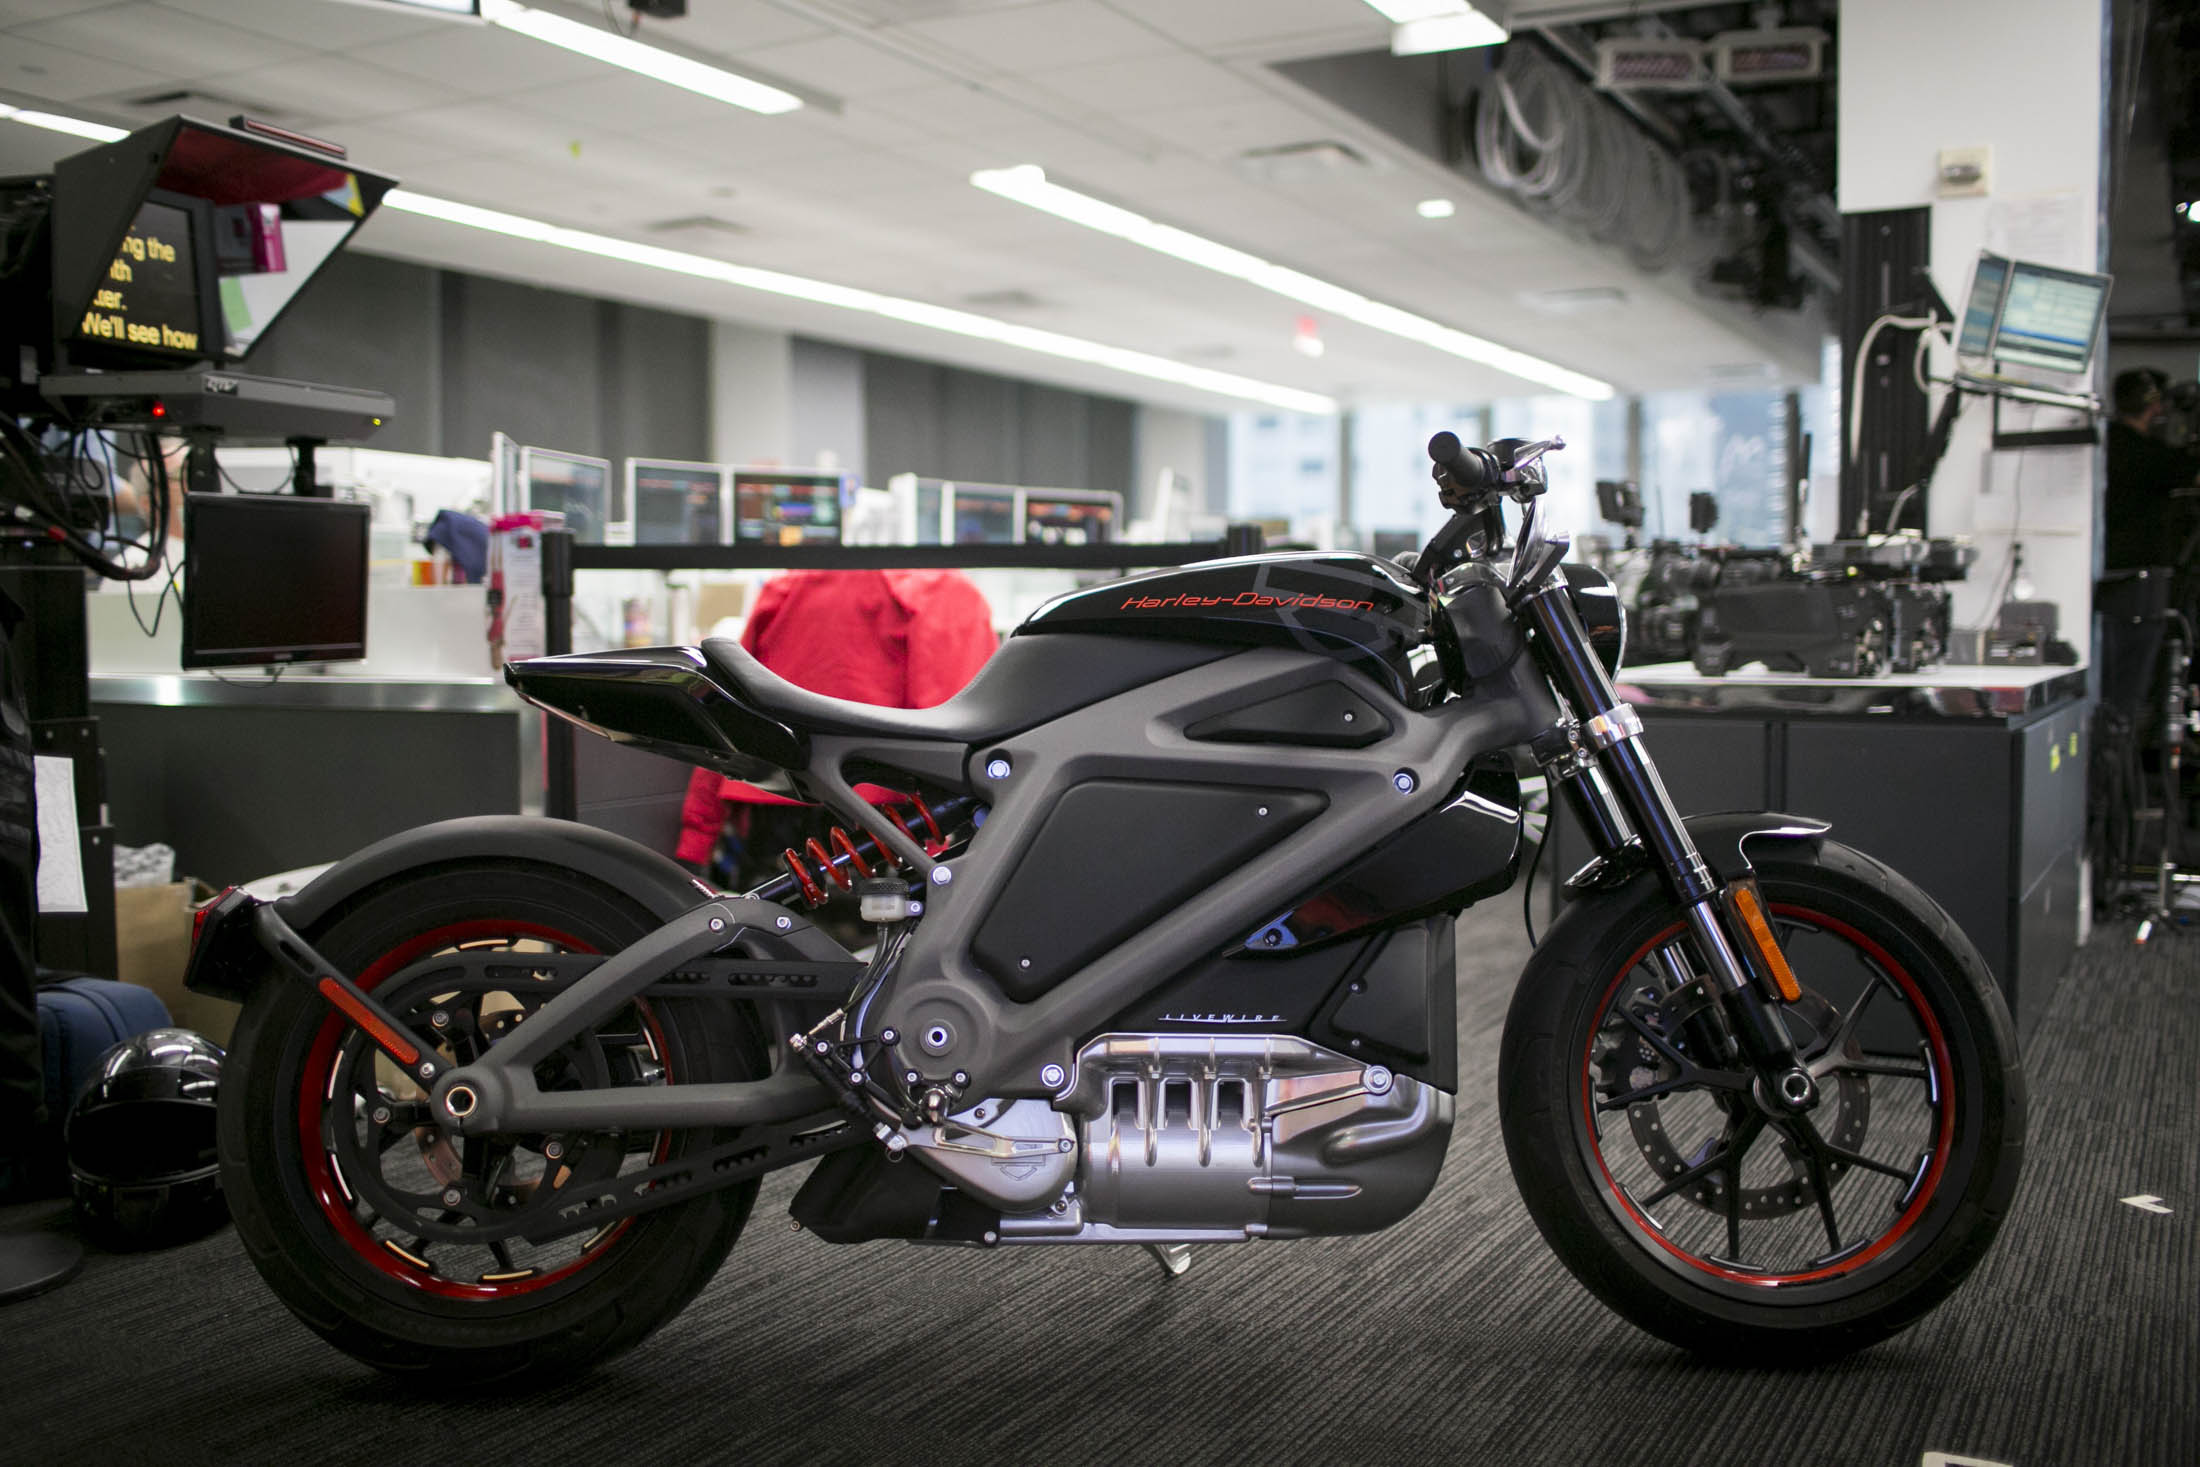 A Harley-Davidson Inc. LiveWire electric motorcycle sits parked in the Bloomberg Television studios in New York, U.S., on Monday, June 23, 2014. Harley-Davidson Inc., whose storied highway cruisers are as loud as they are large, will take 22 electric bikes on a U.S. tour to solicit reactions that will help shape the environmentally aware vehicle's development. Depending on the feedback, the no-exhaust Harley may never make it out of R&D. Photographer: Scott Eells/Bloomberg